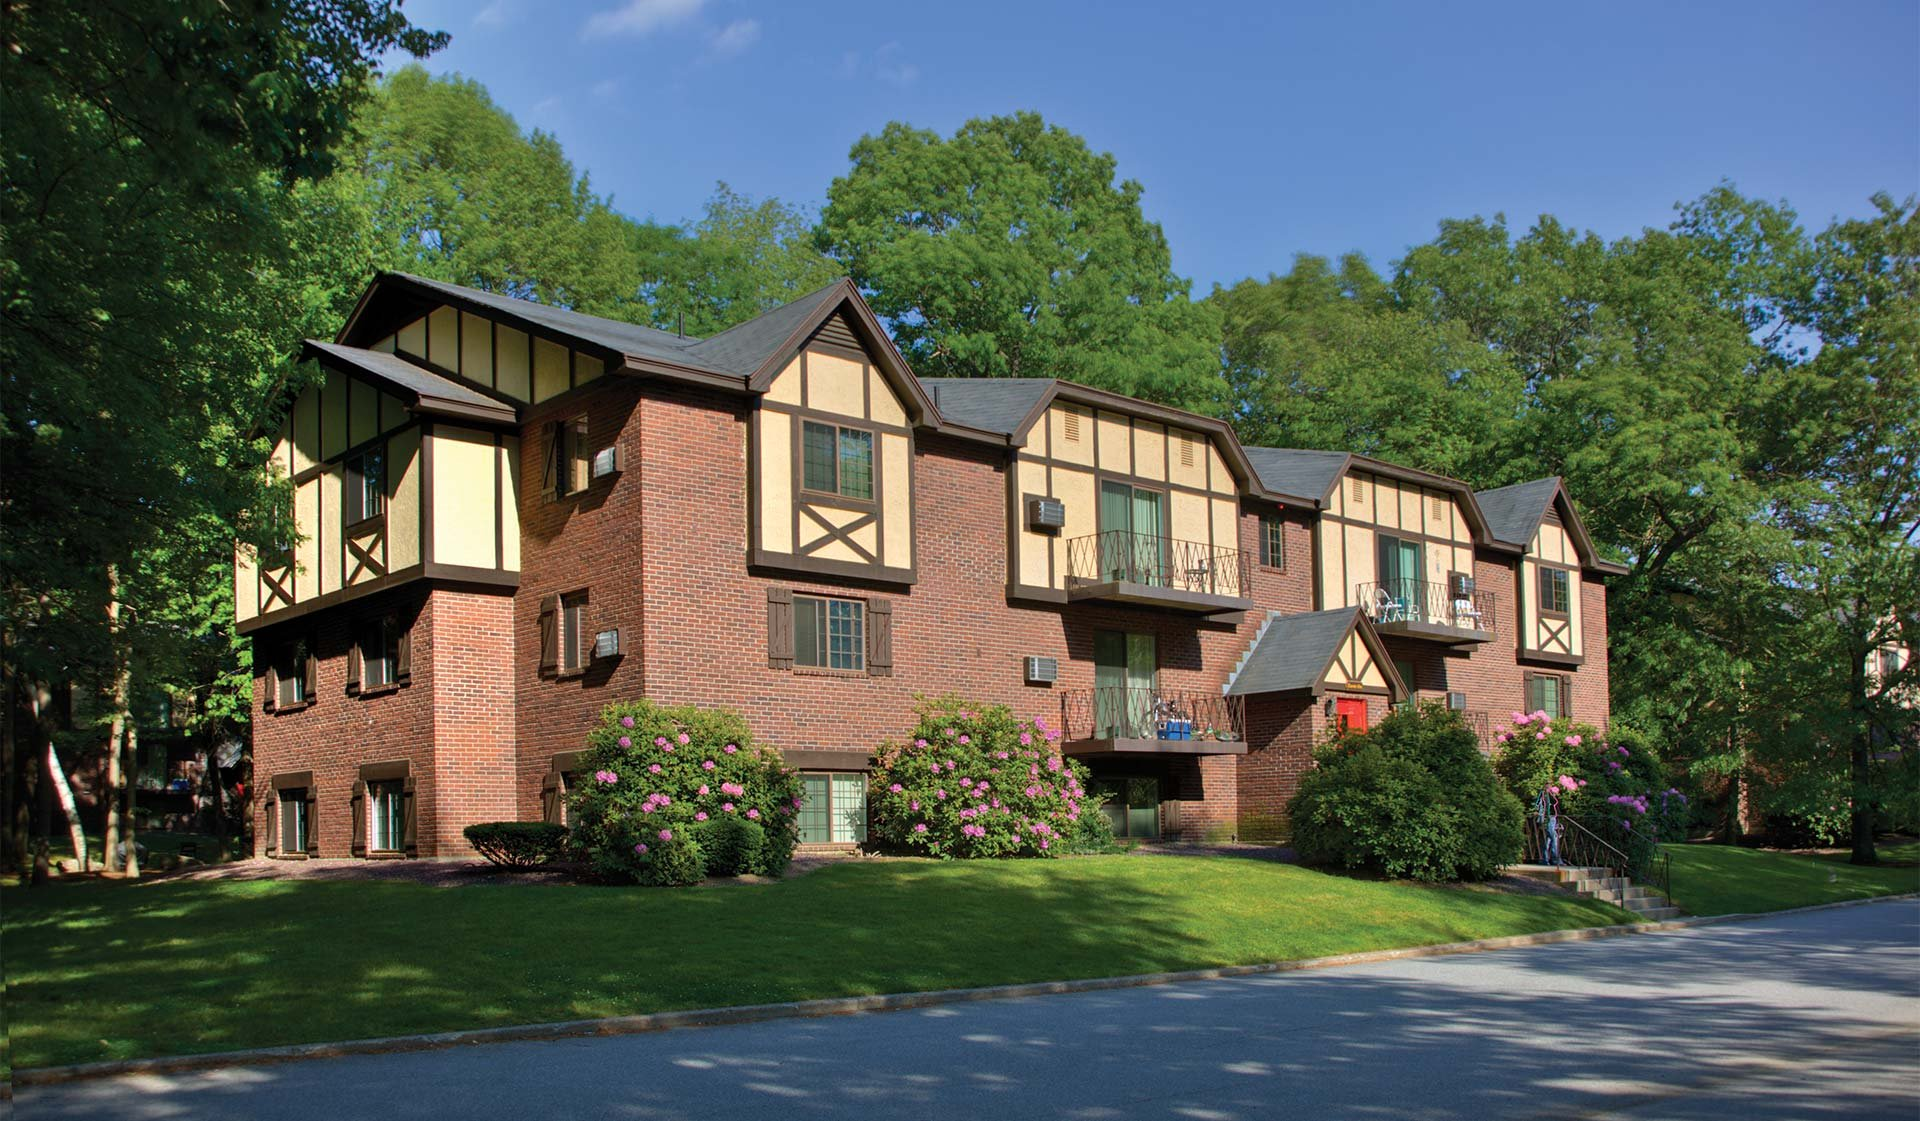 Royal Crest Estates Apartments in North Andover, MA - Beautiful Location